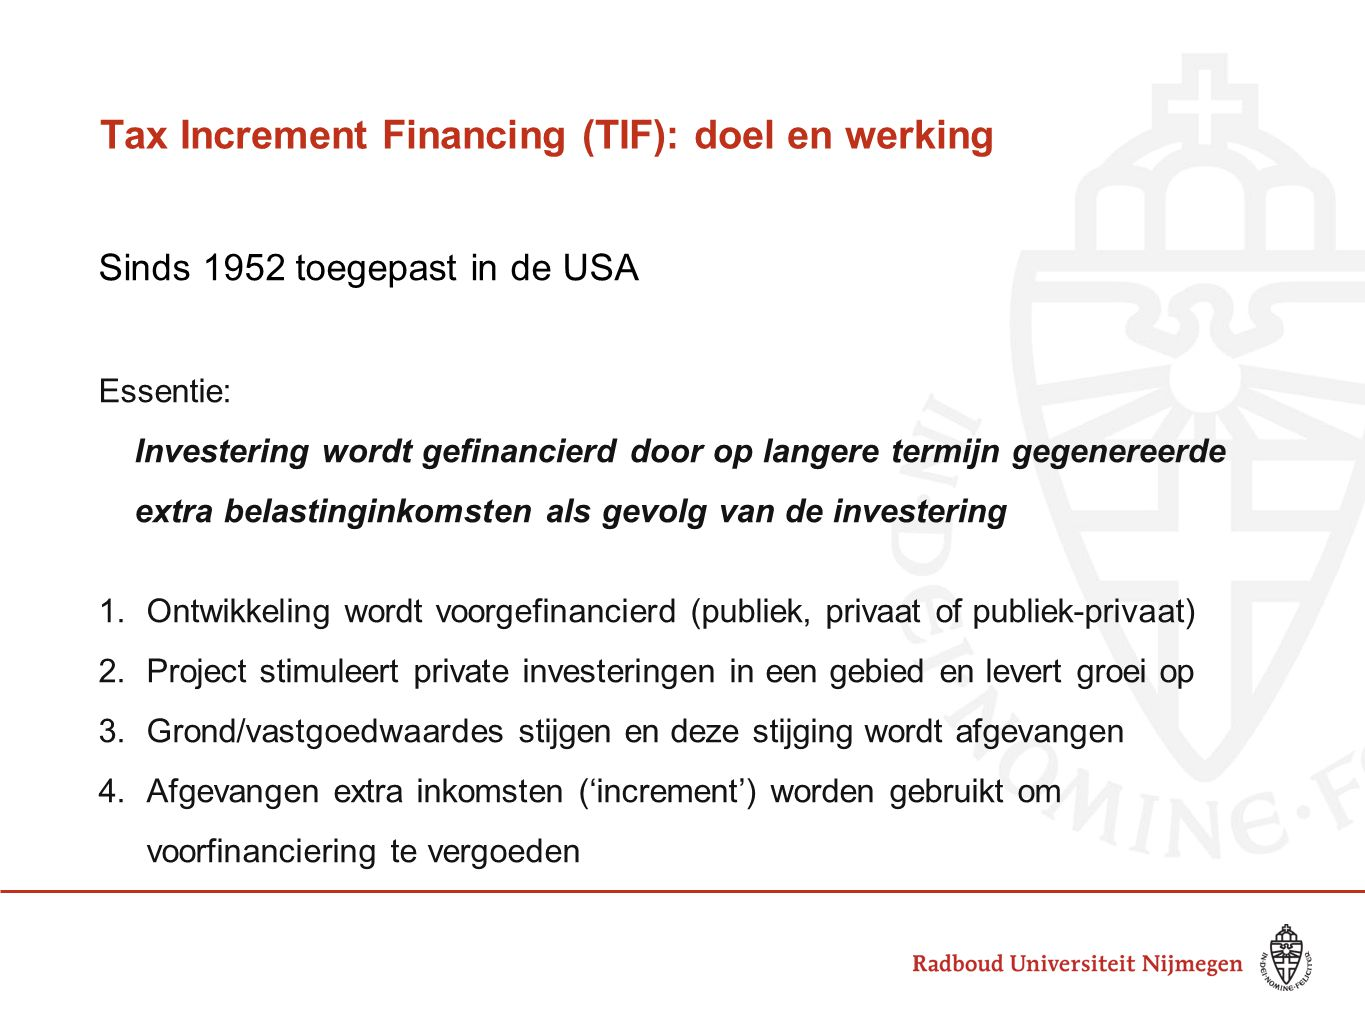 Tax Increment Financing (TIF): doel en werking